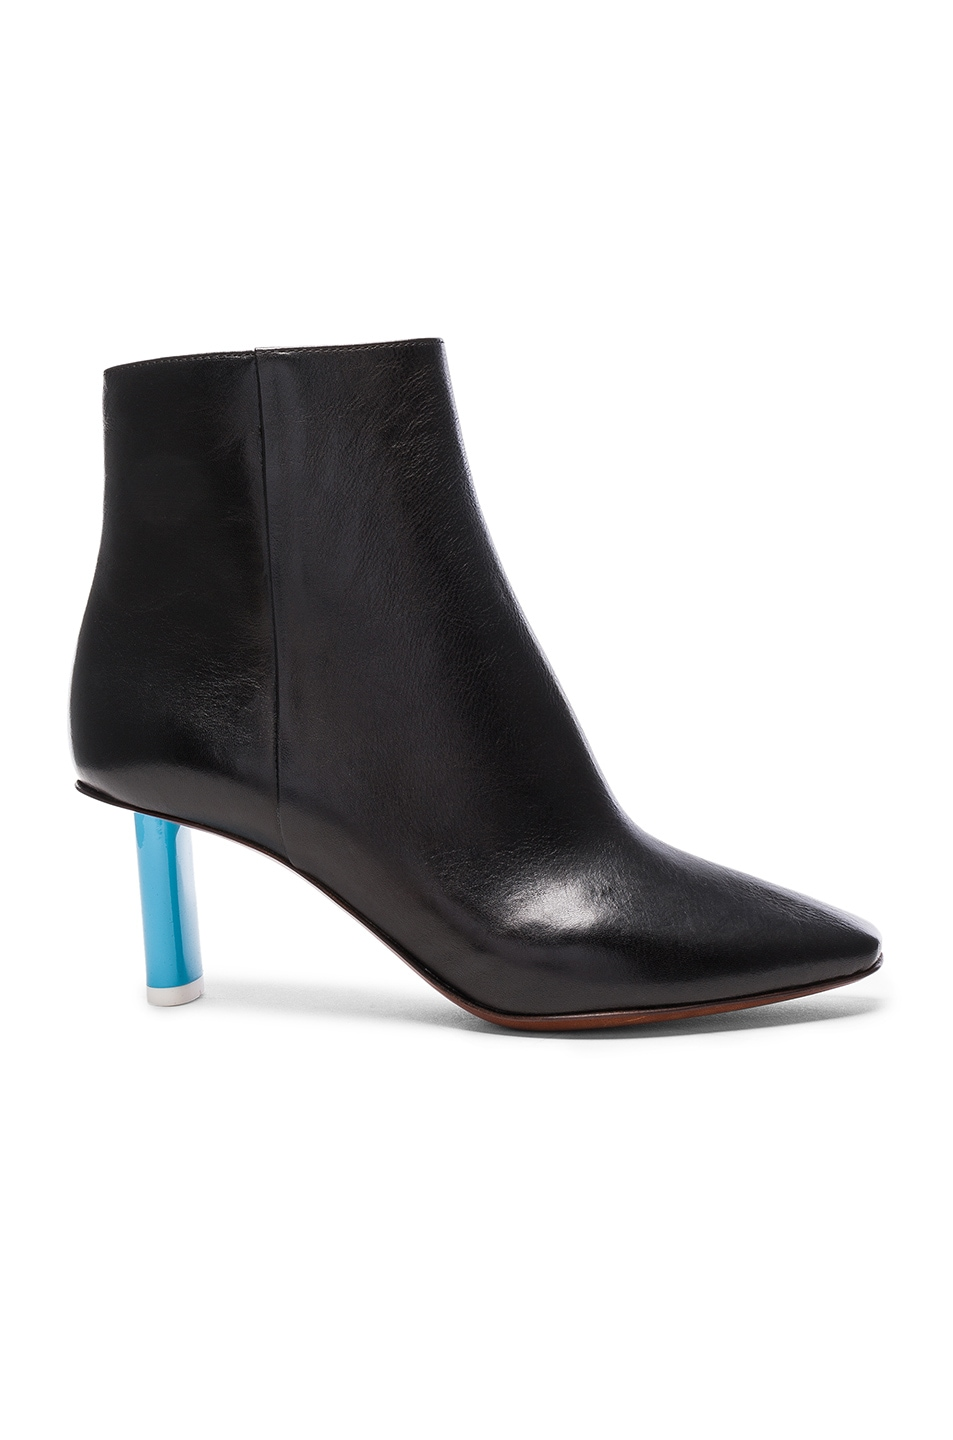 Image 1 of VETEMENTS Leather Ankle Boots in Black & Blue